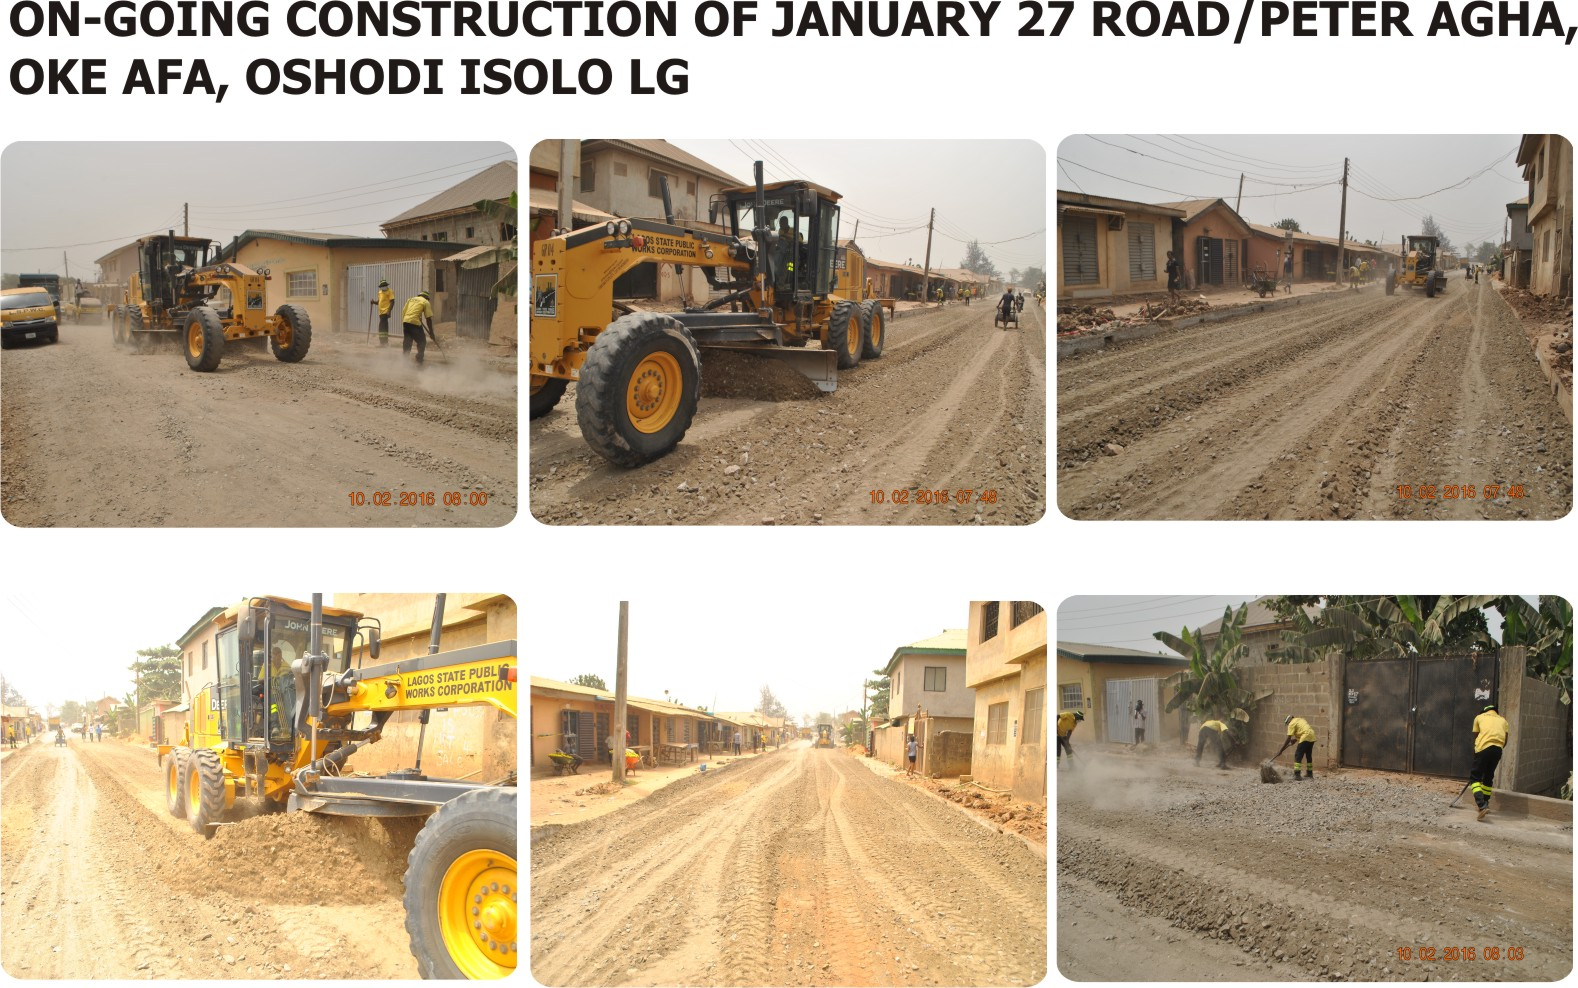 Lagos State Government Constructs January 27 Road